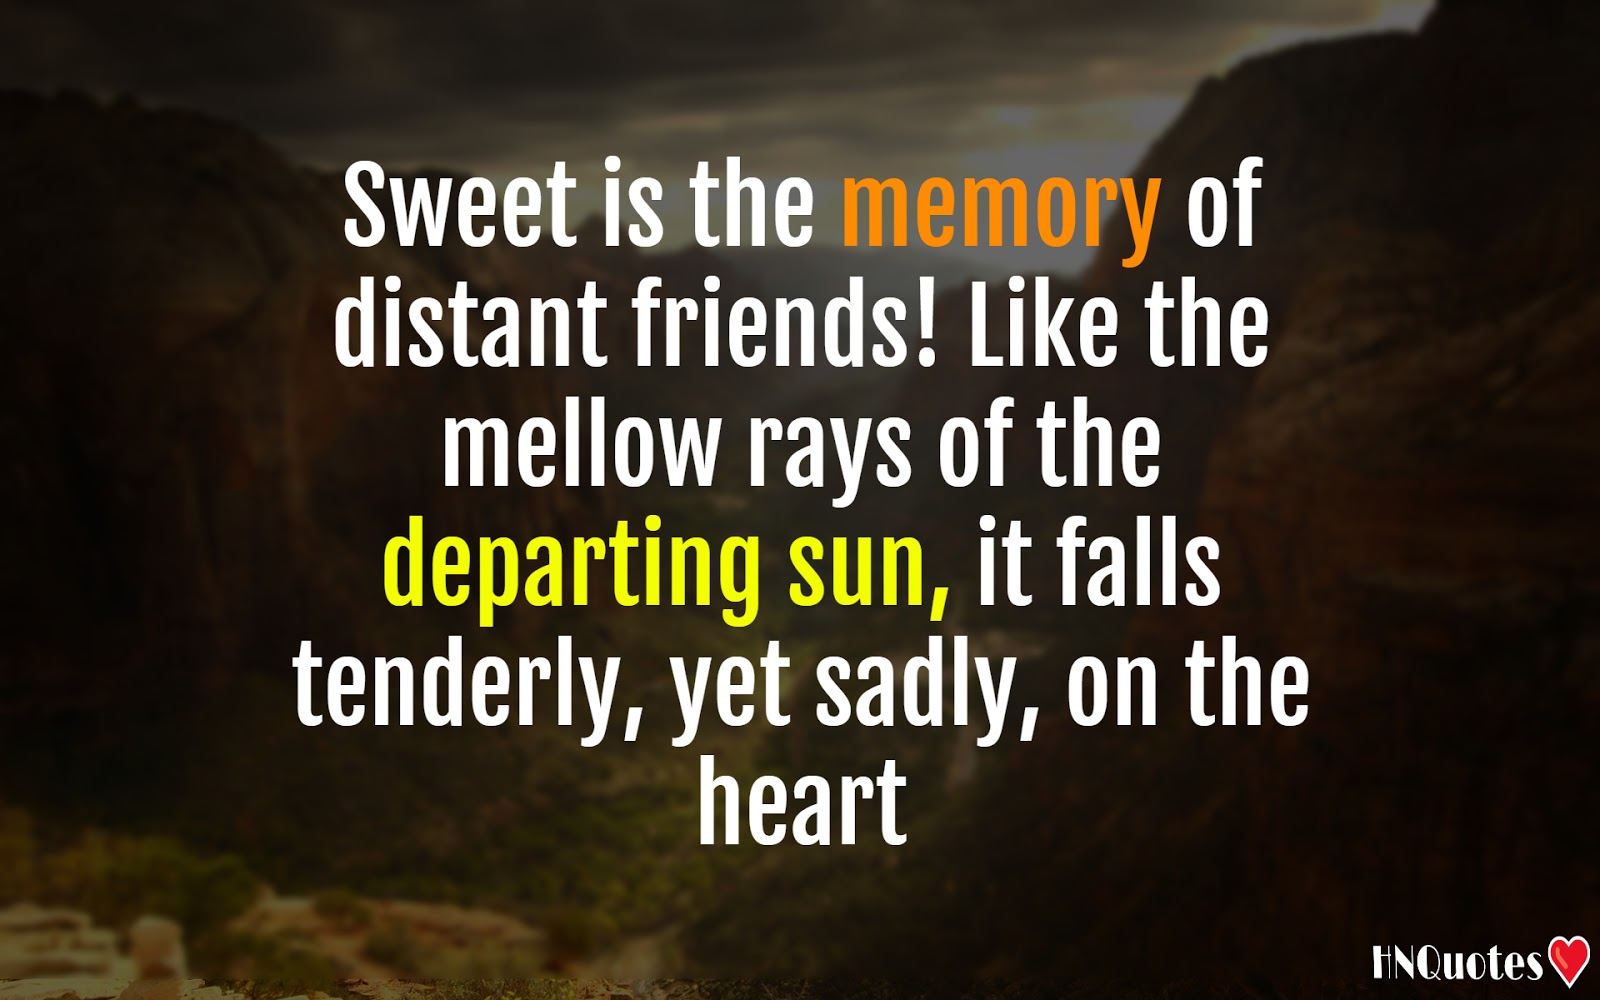 Sad-&-Emotional-Quotes-on-Life-76-Best-Emotional-Quotes[HNQuotes]